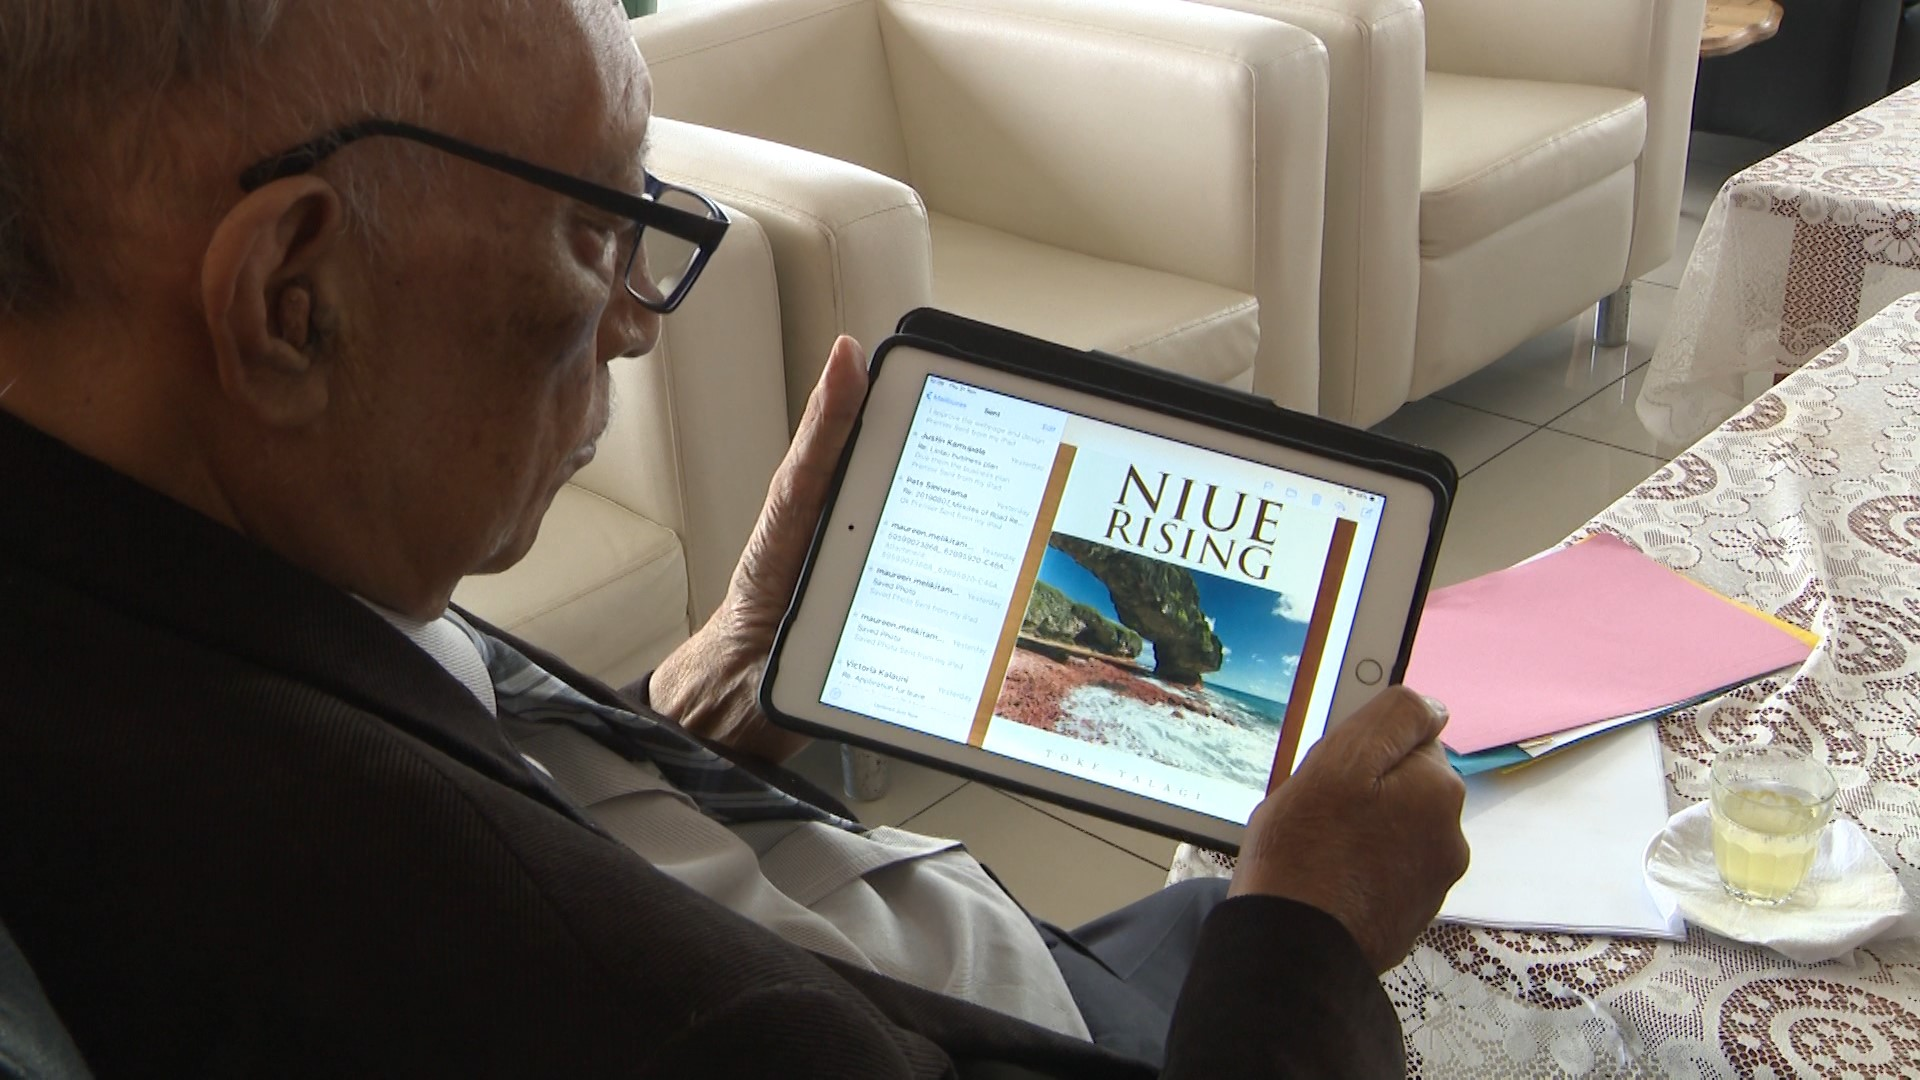 A Politician and an Author.  The Premier Sir Toke Talagi has written a book titled 'Niue Rising' which has just been published this month.  This is a biography of Sir Toke Tufukia…